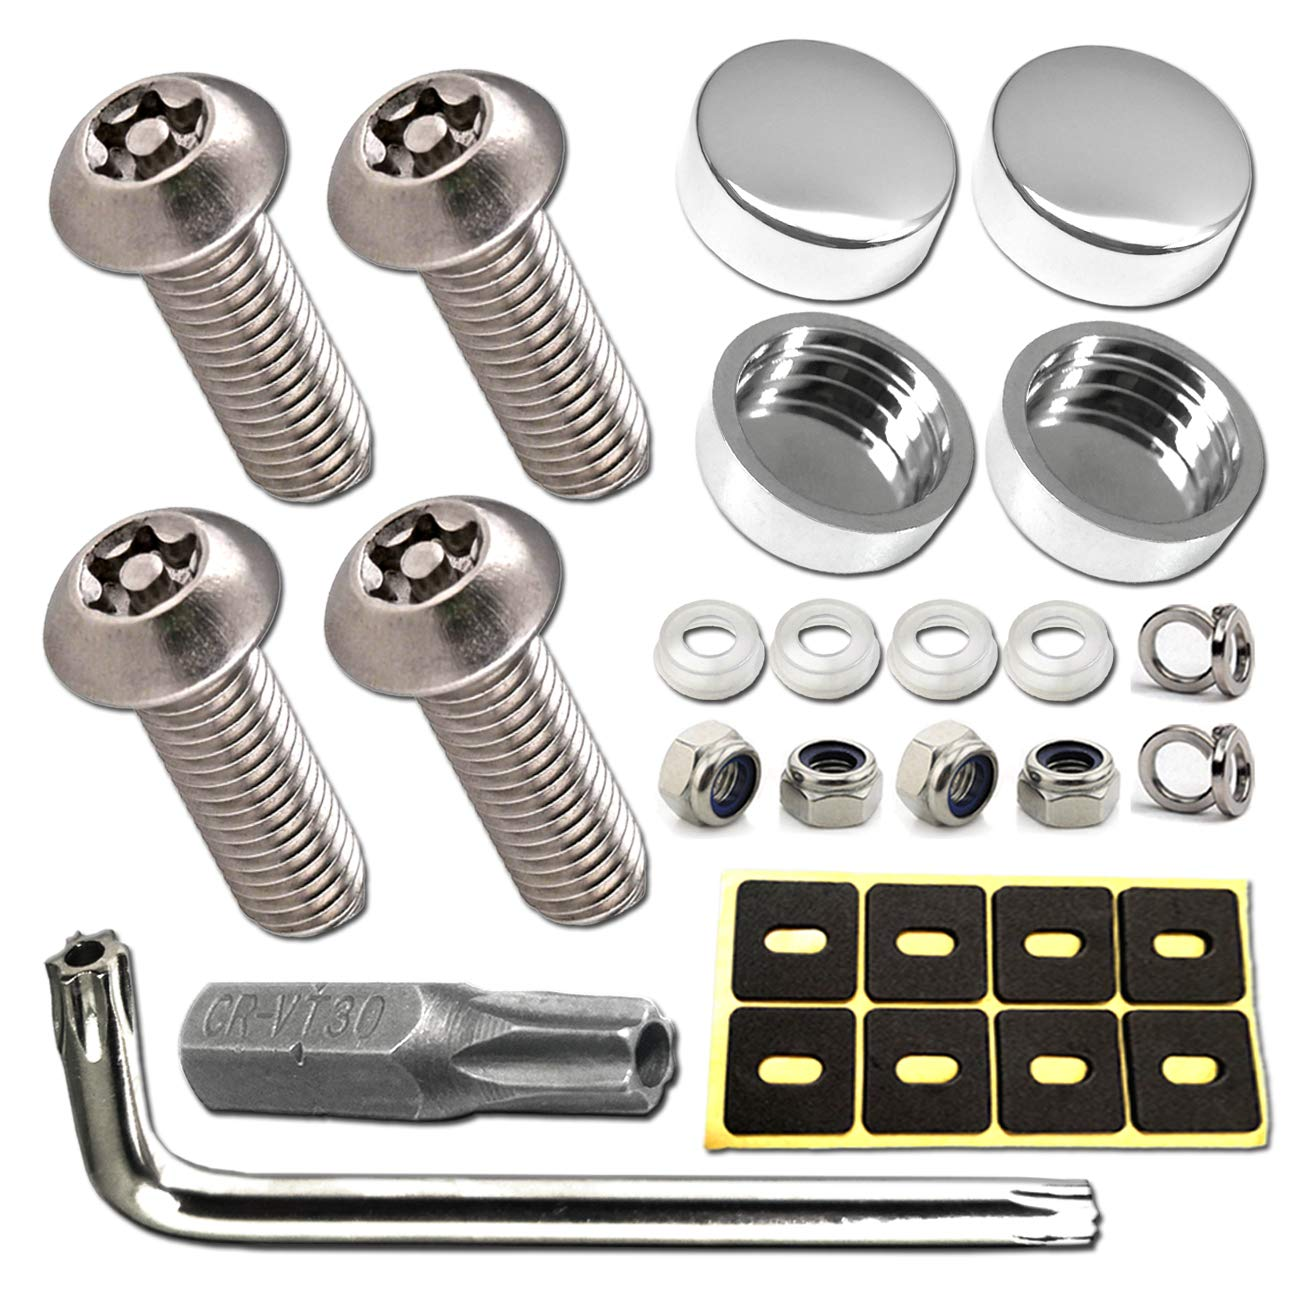 Anti-Theft Screws and Caps Included Premium Mirror License Plate Cover fit for Mercedes Benz License Plate Frame,Silver